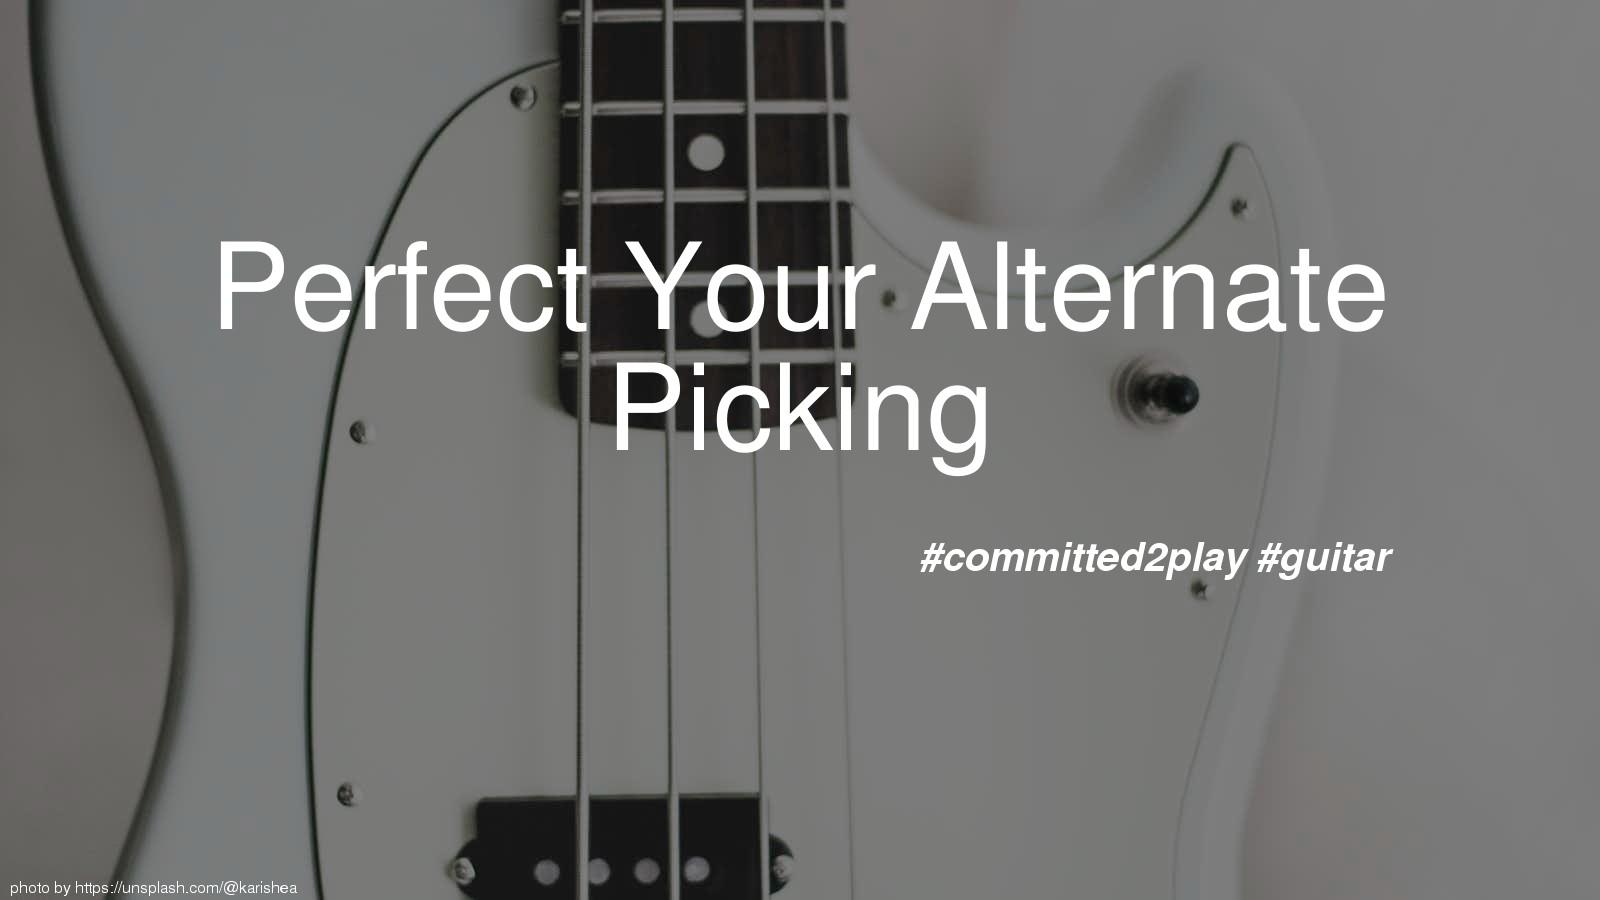 Perfect Your Alternate Picking